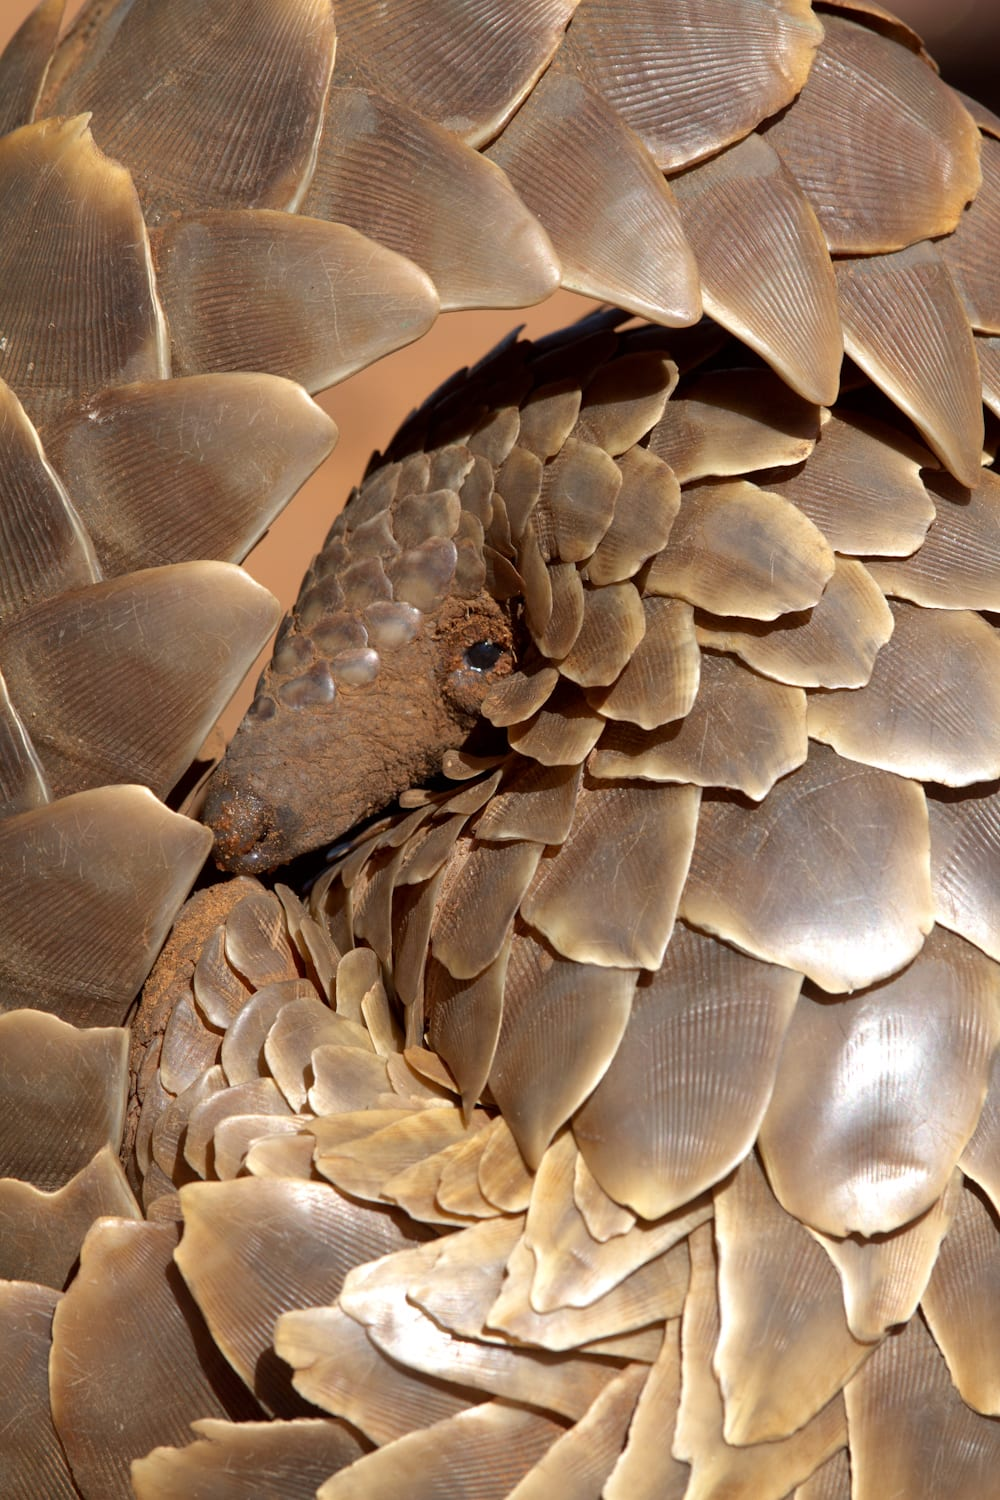 Pangolin research. Kalahari Conservation and Wildlife Research by Tswalu Foundation